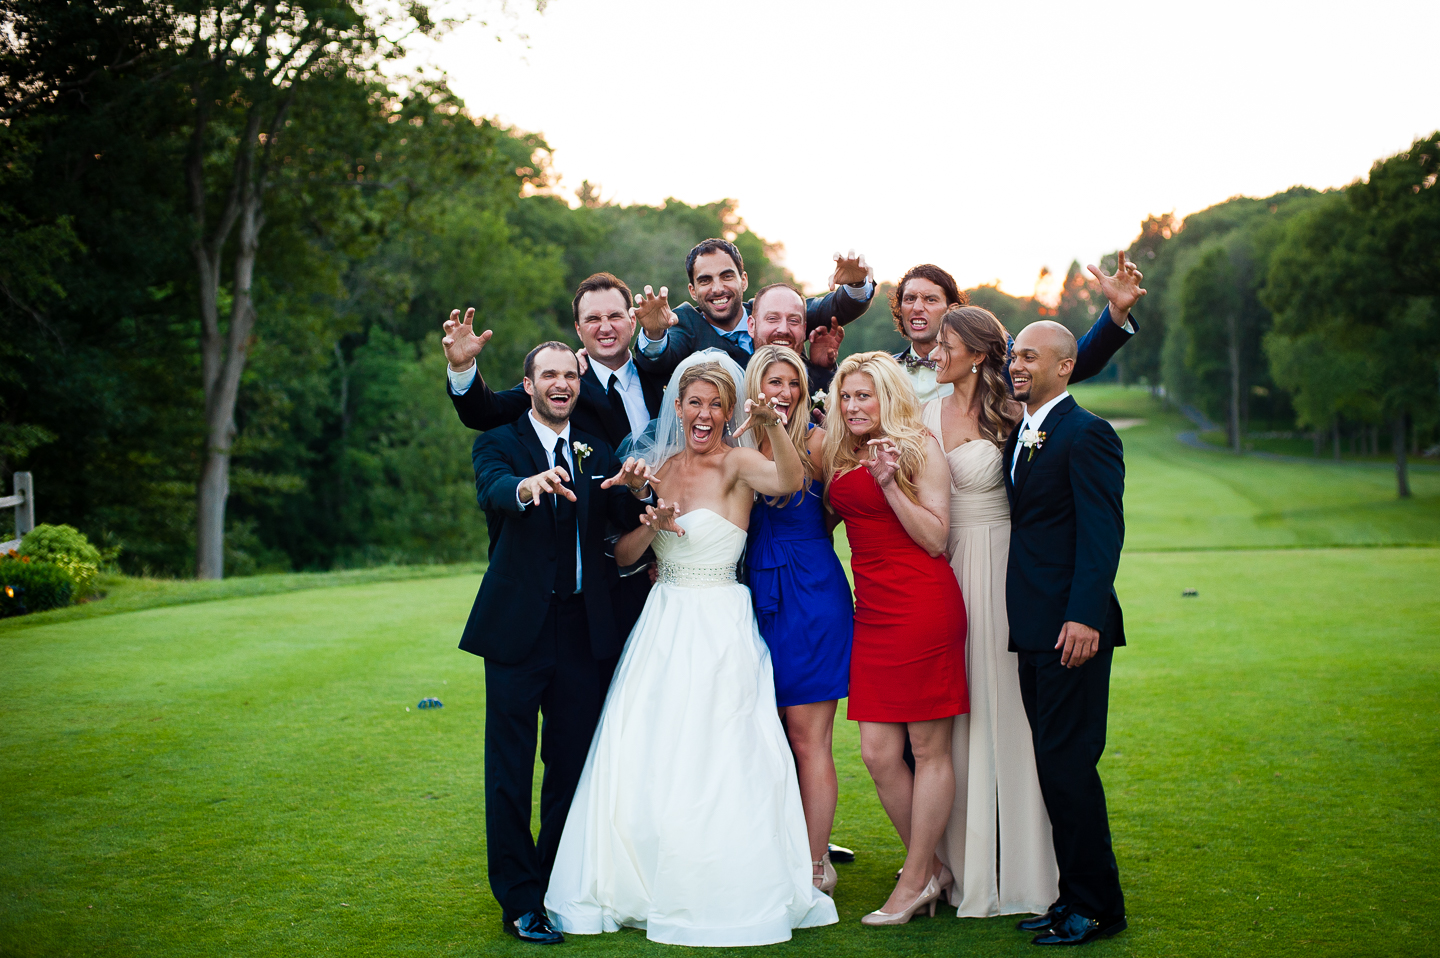 the bride and groom with their friends goofing off on the golf course